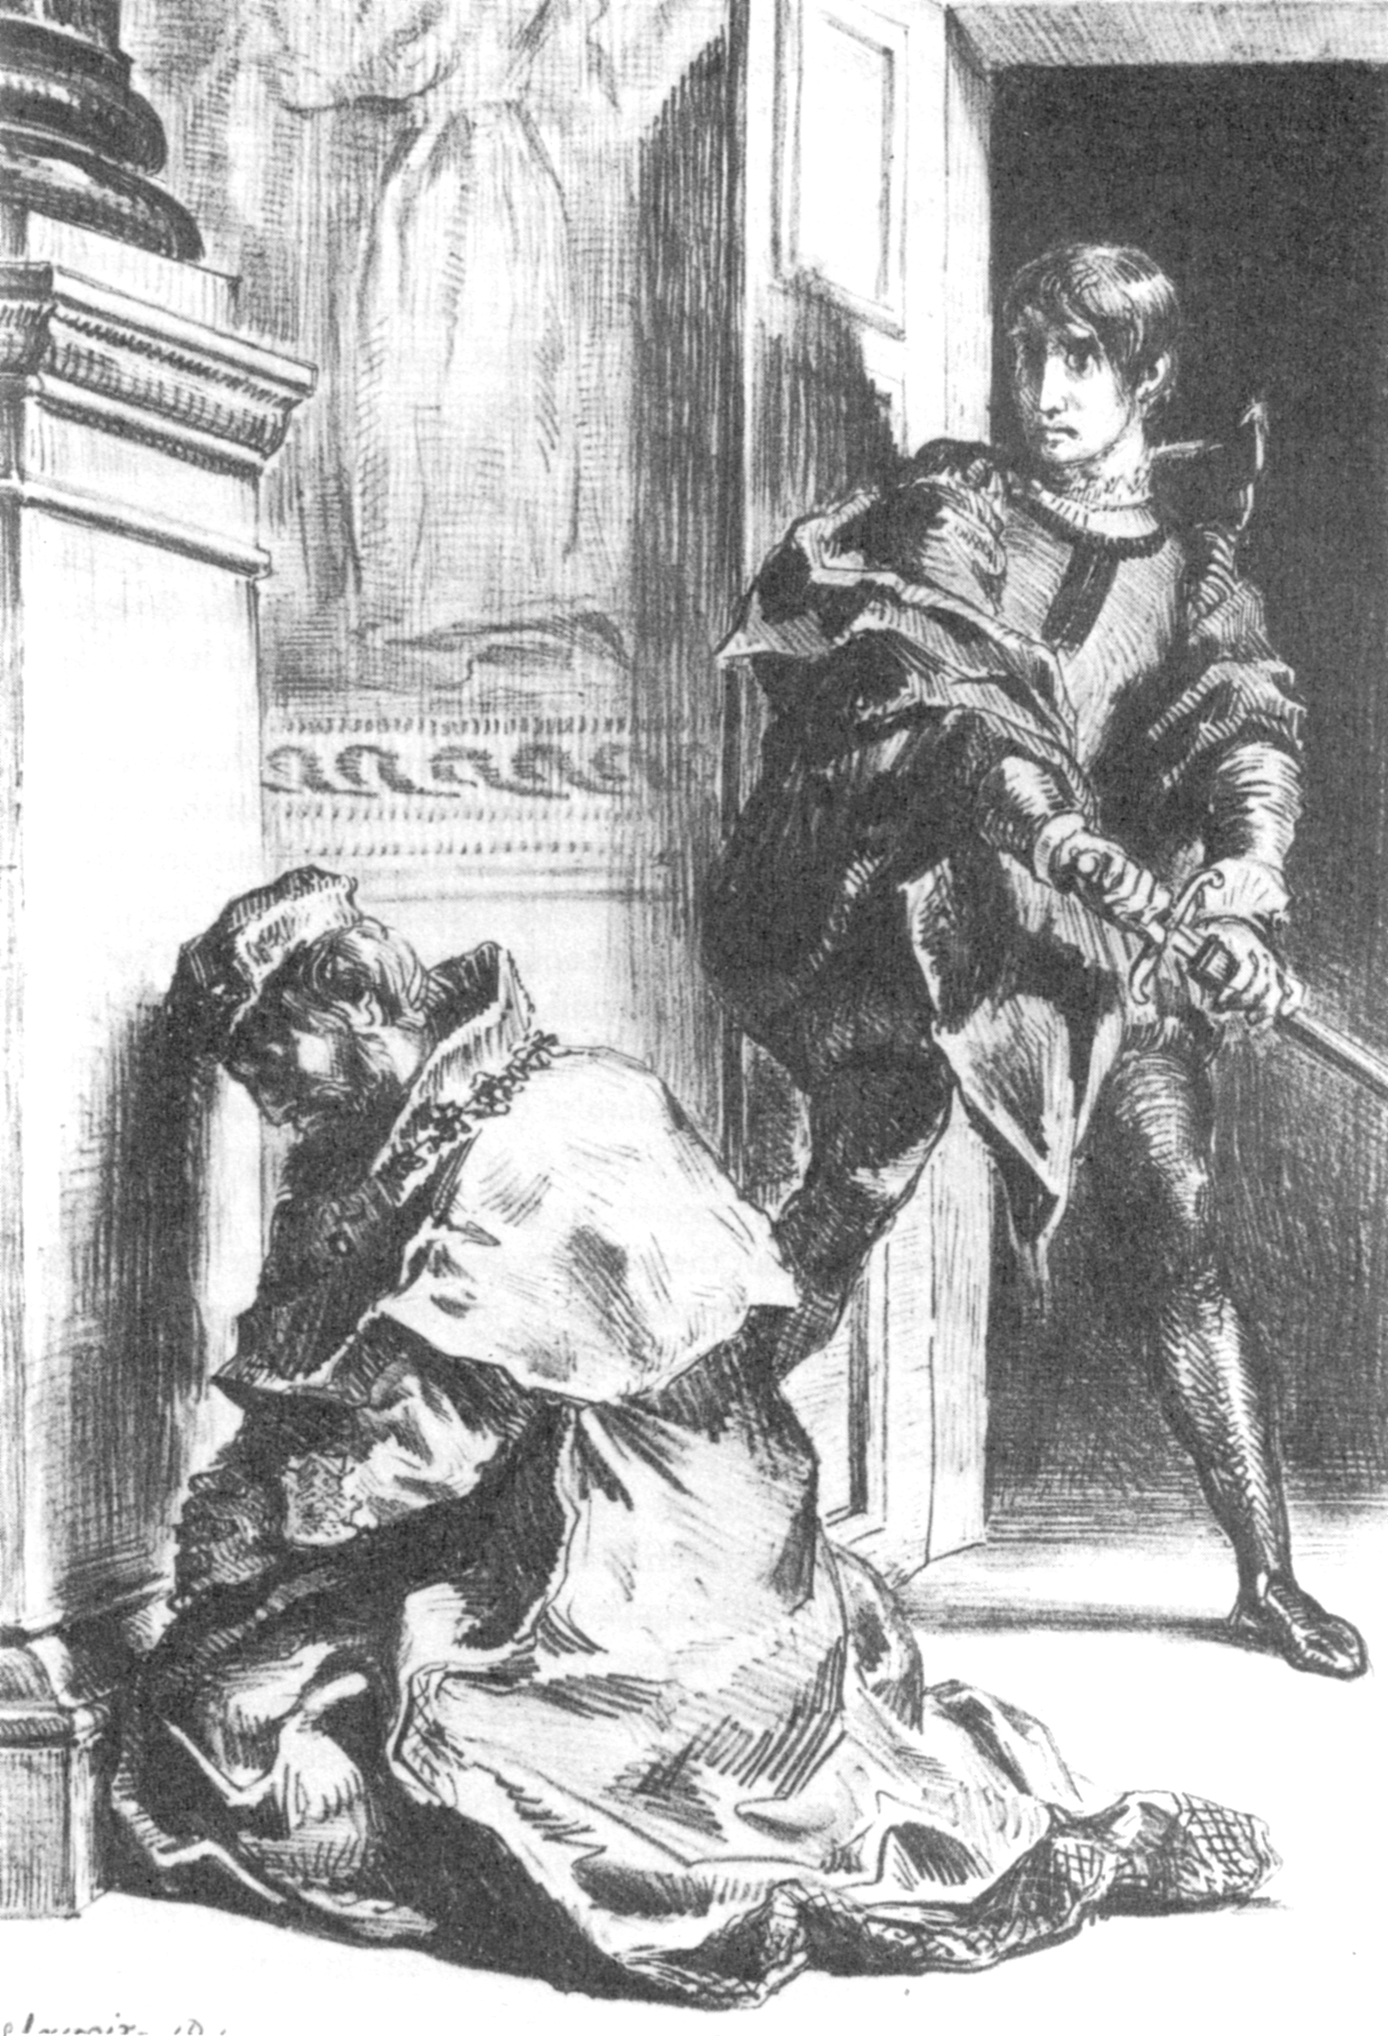 the theme of death in william shakespeares play hamlet The tragedy of hamlet, prince of denmark, often shortened to hamlet (/ ˈ h æ m l ɪ t /), is a tragedy written by william shakespeare at an uncertain the theme of death in william shakespeares play hamlet date between.